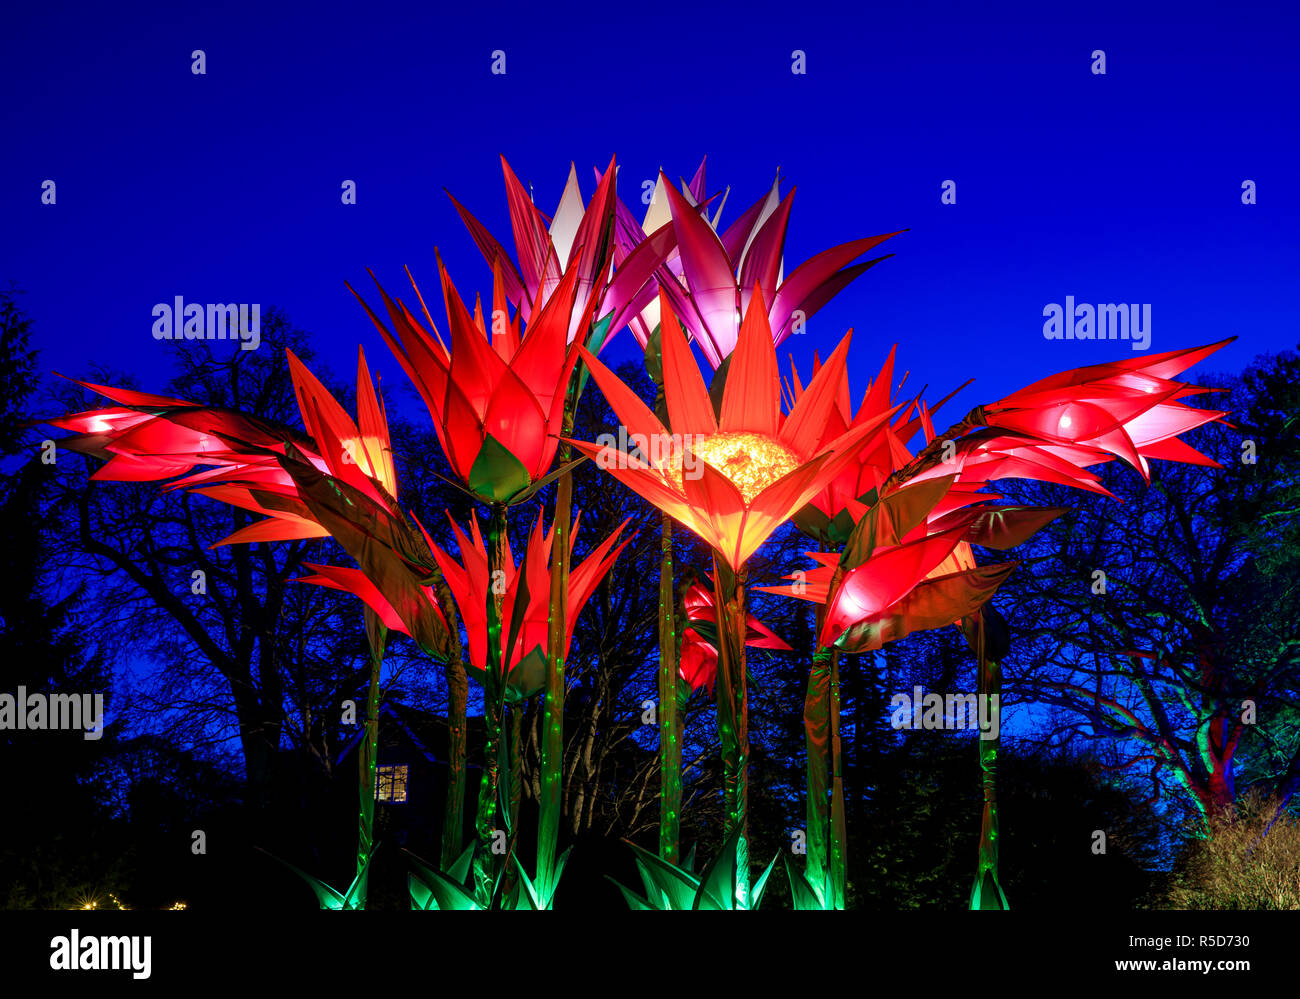 Wisley, Surrey, UK, 30 November 2018.  30th November 2018. The daily light installations returns to Wisley from 1 December until Wednesday 2 January 2019 from 4pm - 8pm.  Back for its fourth year, Christmas Glow guides visitors around a new route for 2018, taking in locations including the Rock Garden, the Seven Acres lake and the Jellicoe Canal. Jigantics, designers of cultivated illumination, will this year bring a number of brand new blooms to Wisley, including arches of gladioli over the new Wisteria Walk and a bouquet of alliums on Seven Acres. Credit: Oliver Dixon/Alamy Live News - Stock Image